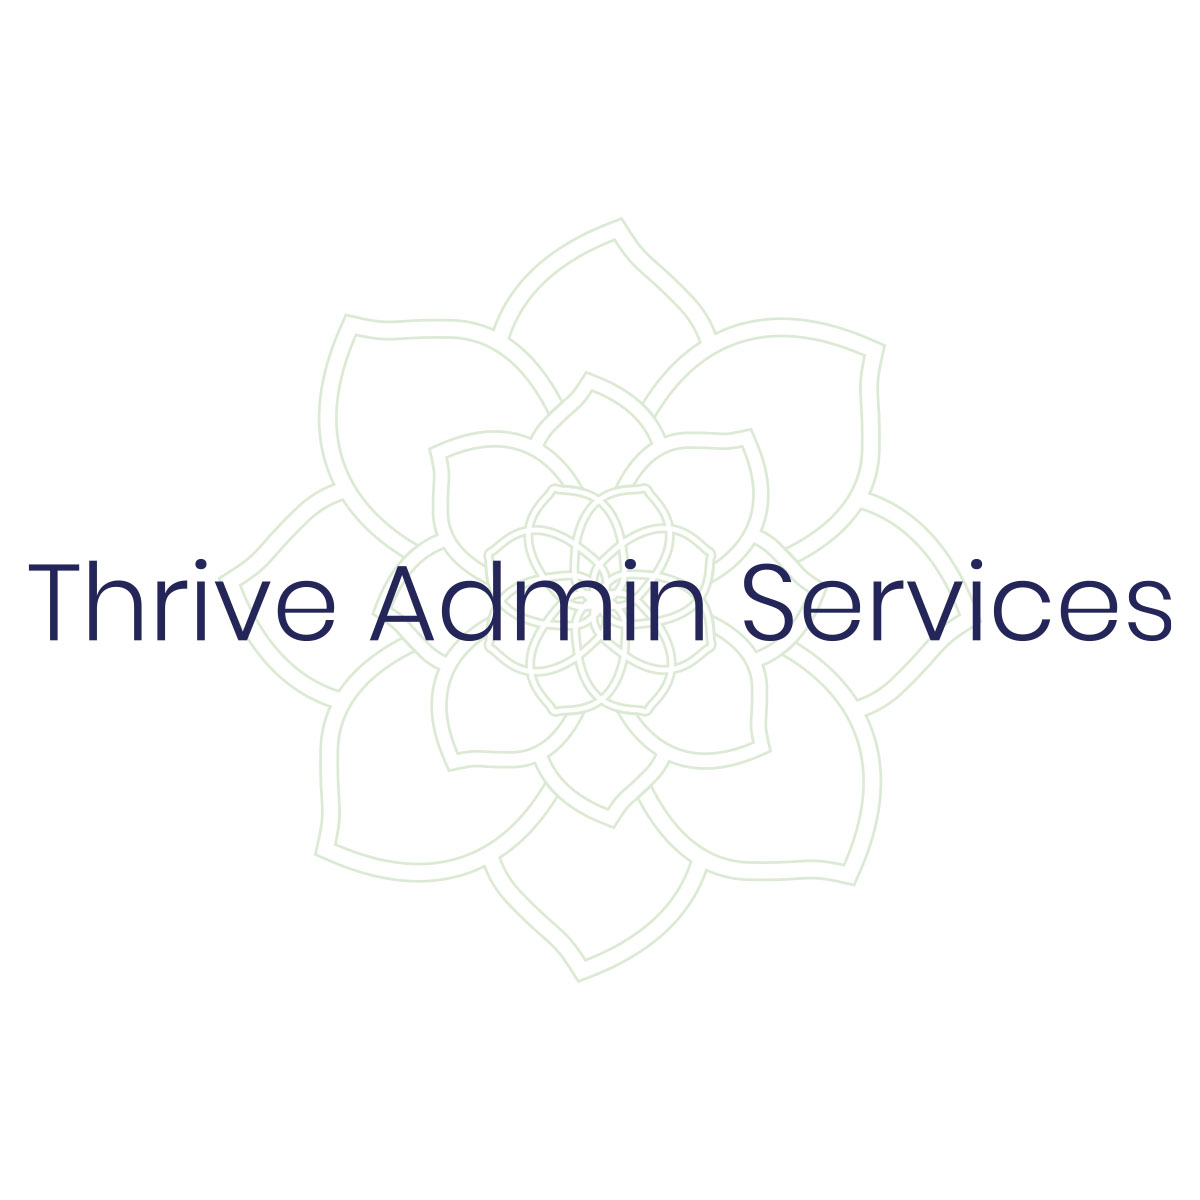 Thrive Admin Services